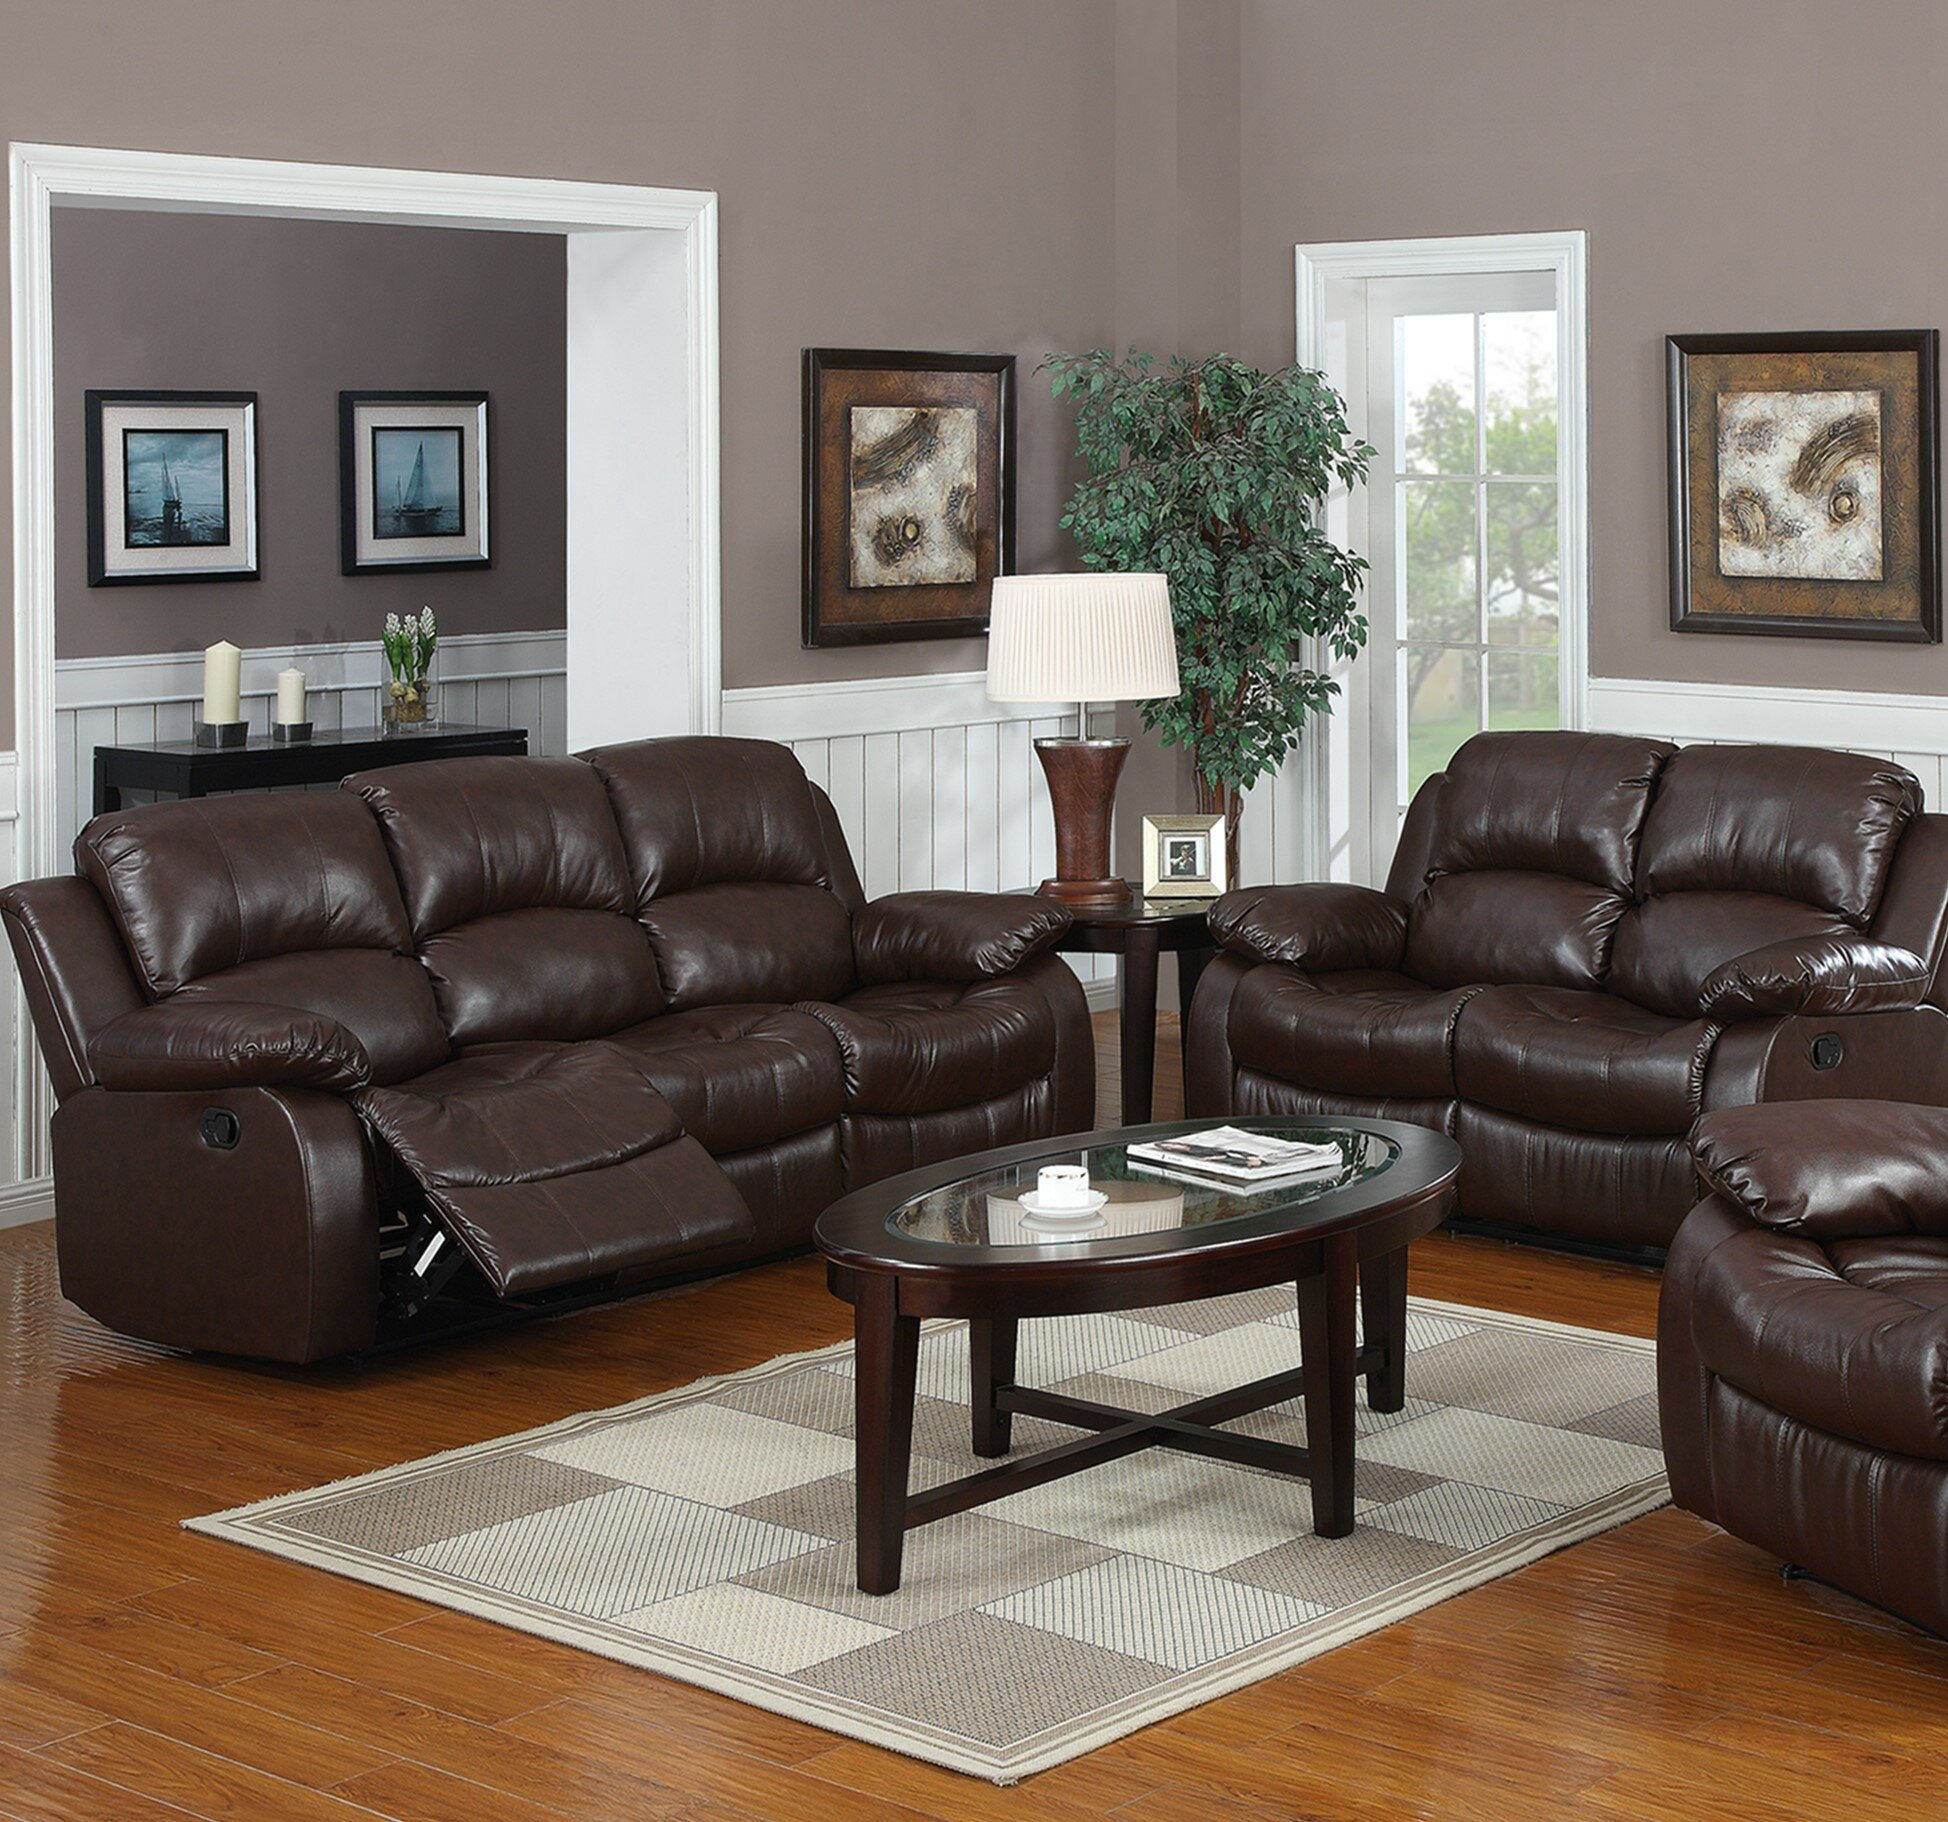 Latitude Run® Bryce 2 Piece Reclining Living Room Set & Reviews